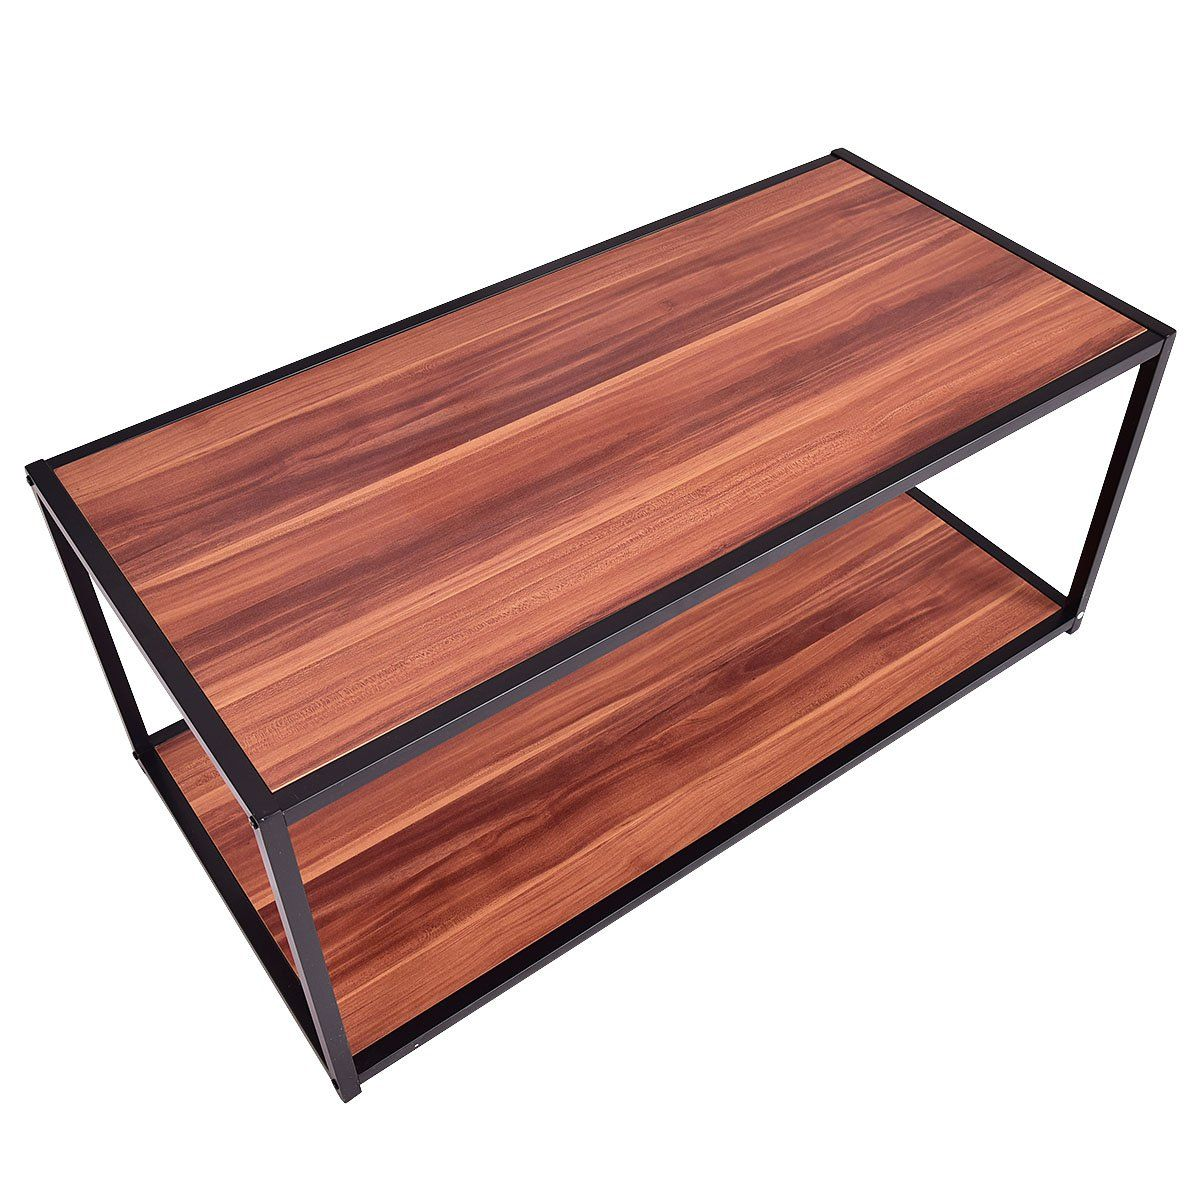 Giantex Rectangle Coffee Table Sofa End Table Side Modern Furniture You Could Get E Coffee Table Rectangle Rectangular Coffee Table Glass Wood Coffee Table